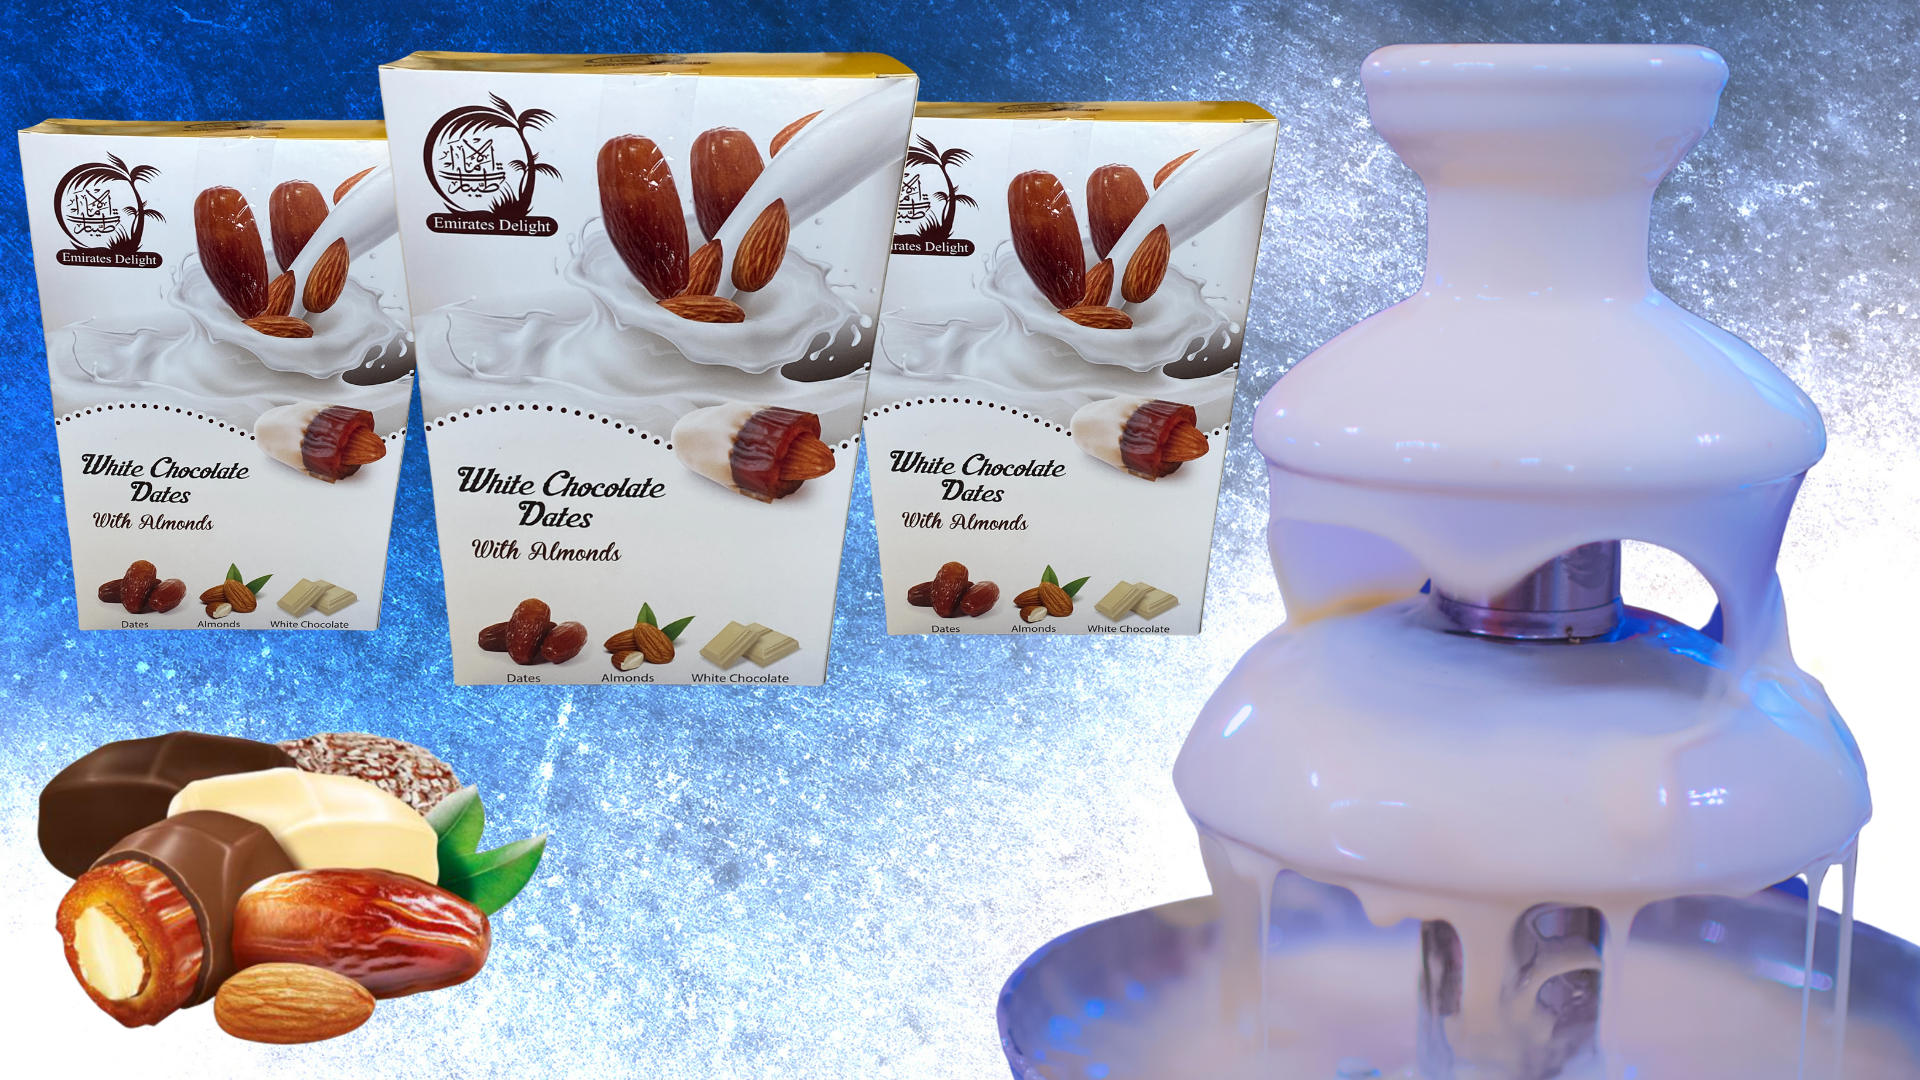 White Chocolate Medjoul Dates with Roasted Almond (454g)